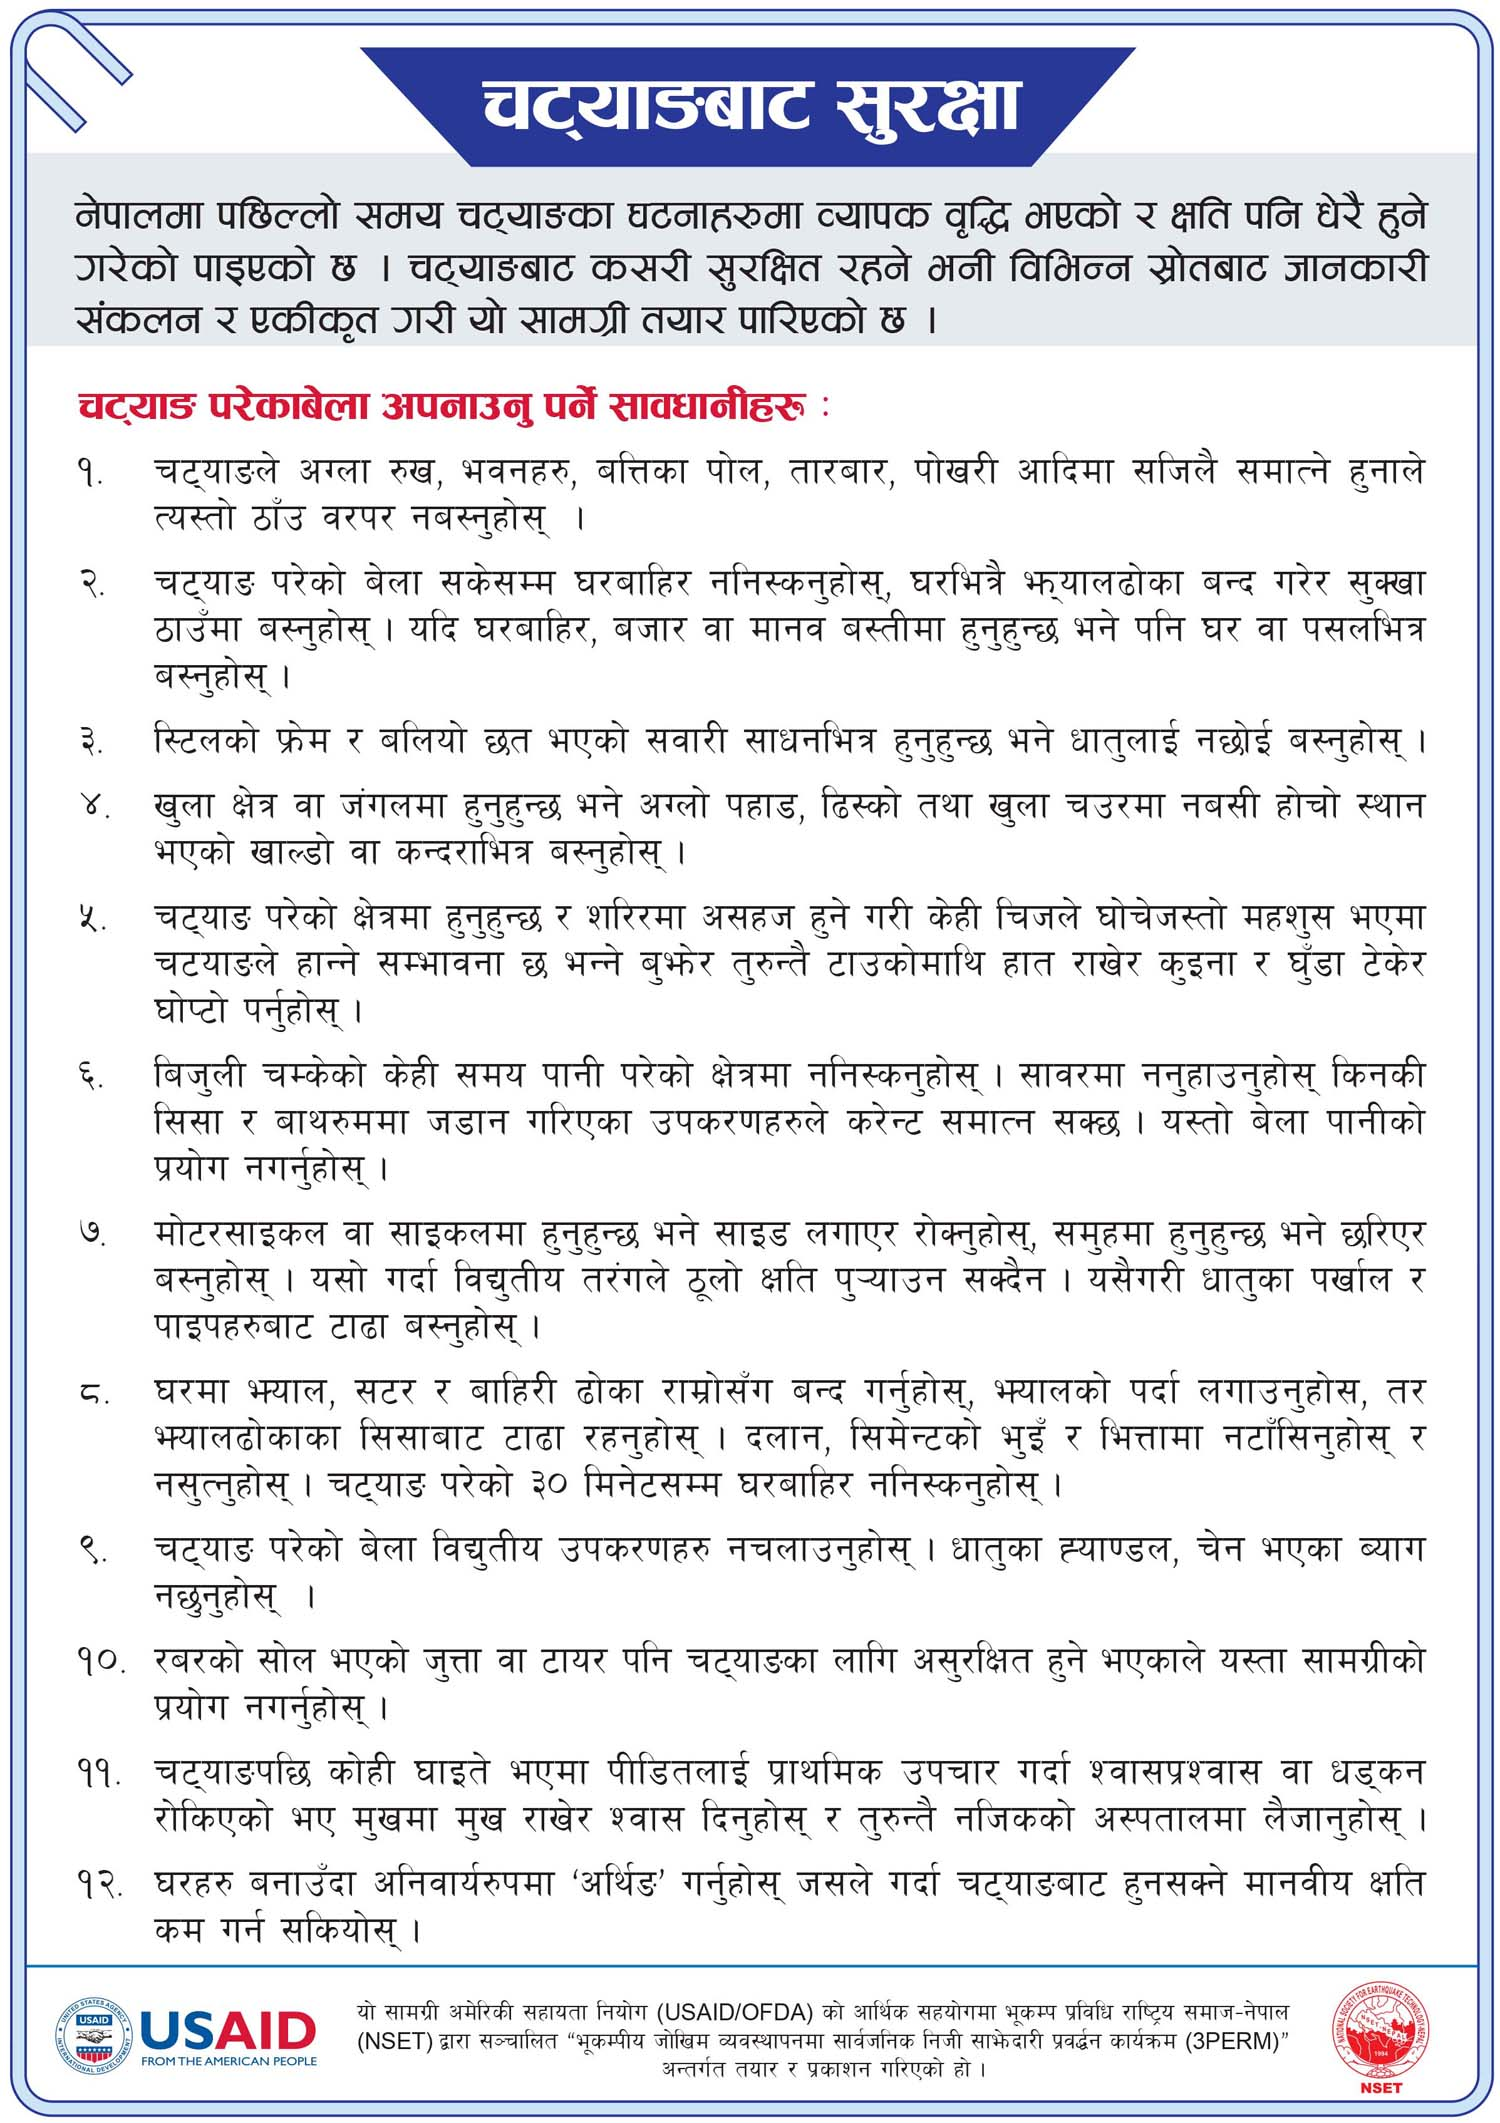 General Guideline & Safety Tips| NSET-Nepal, Earthquake Safe